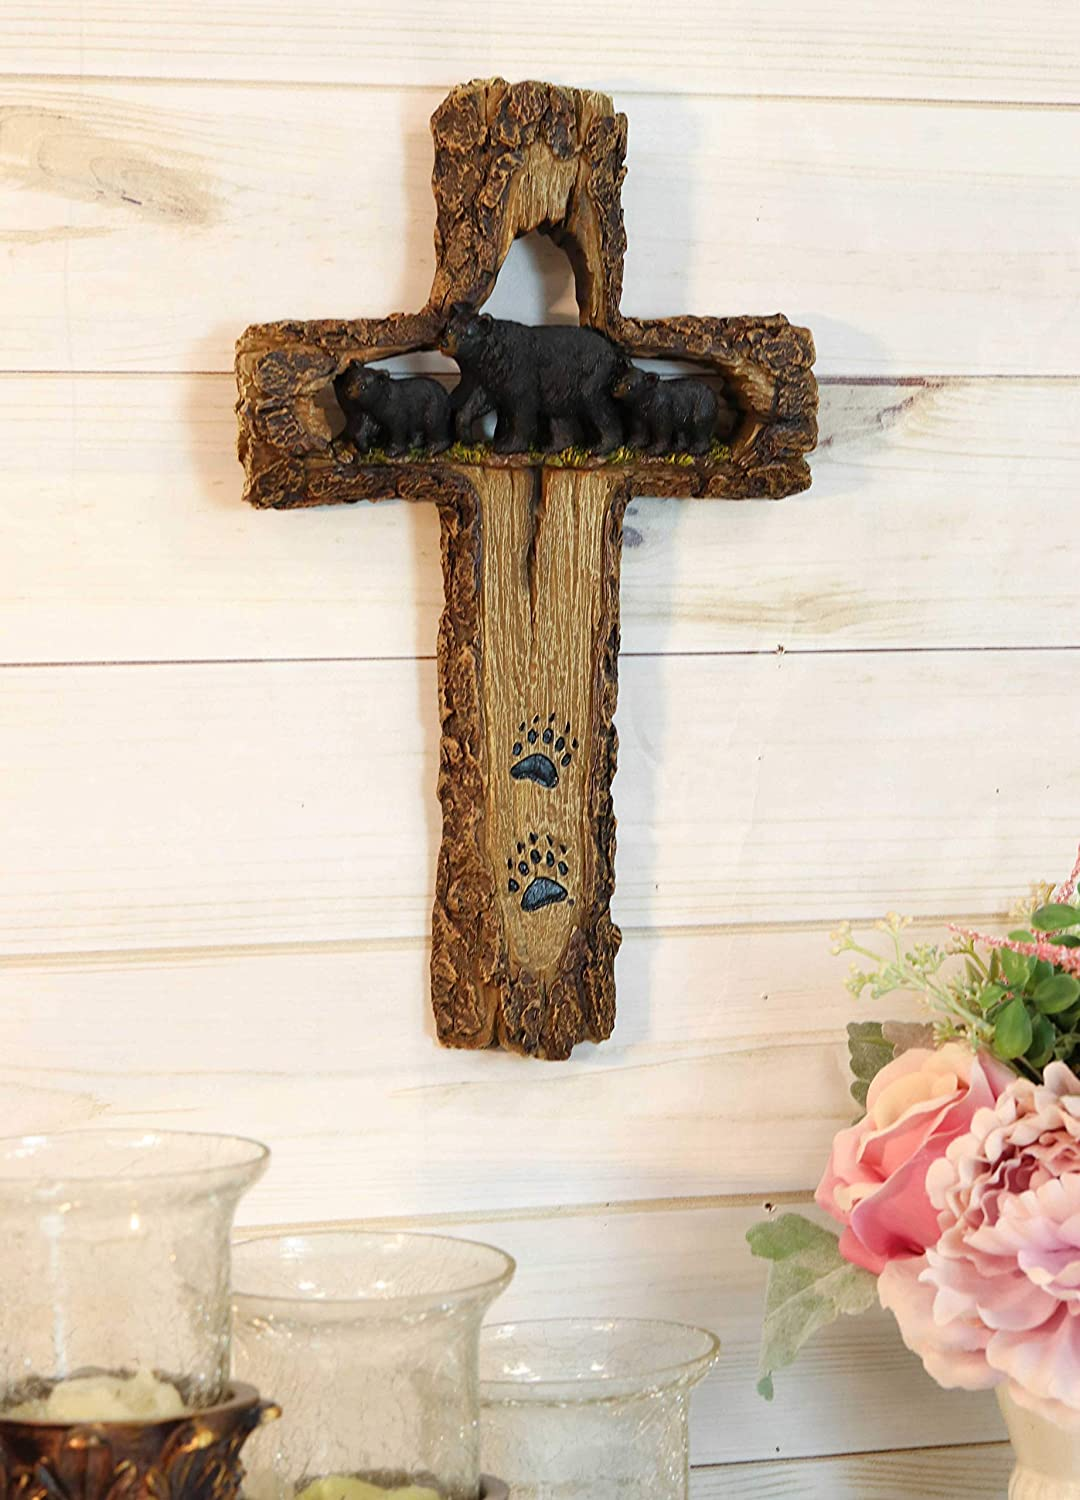 "Ebros Gift 13.5"" Tall Rustic Western Black Bears Momma And Cubs On Bear Trail Wall Cross Decor Hanging Sculpture With Paws Catholic Christian Country Bears Cubs Cabin Lodge Accent Decorative Crosses"